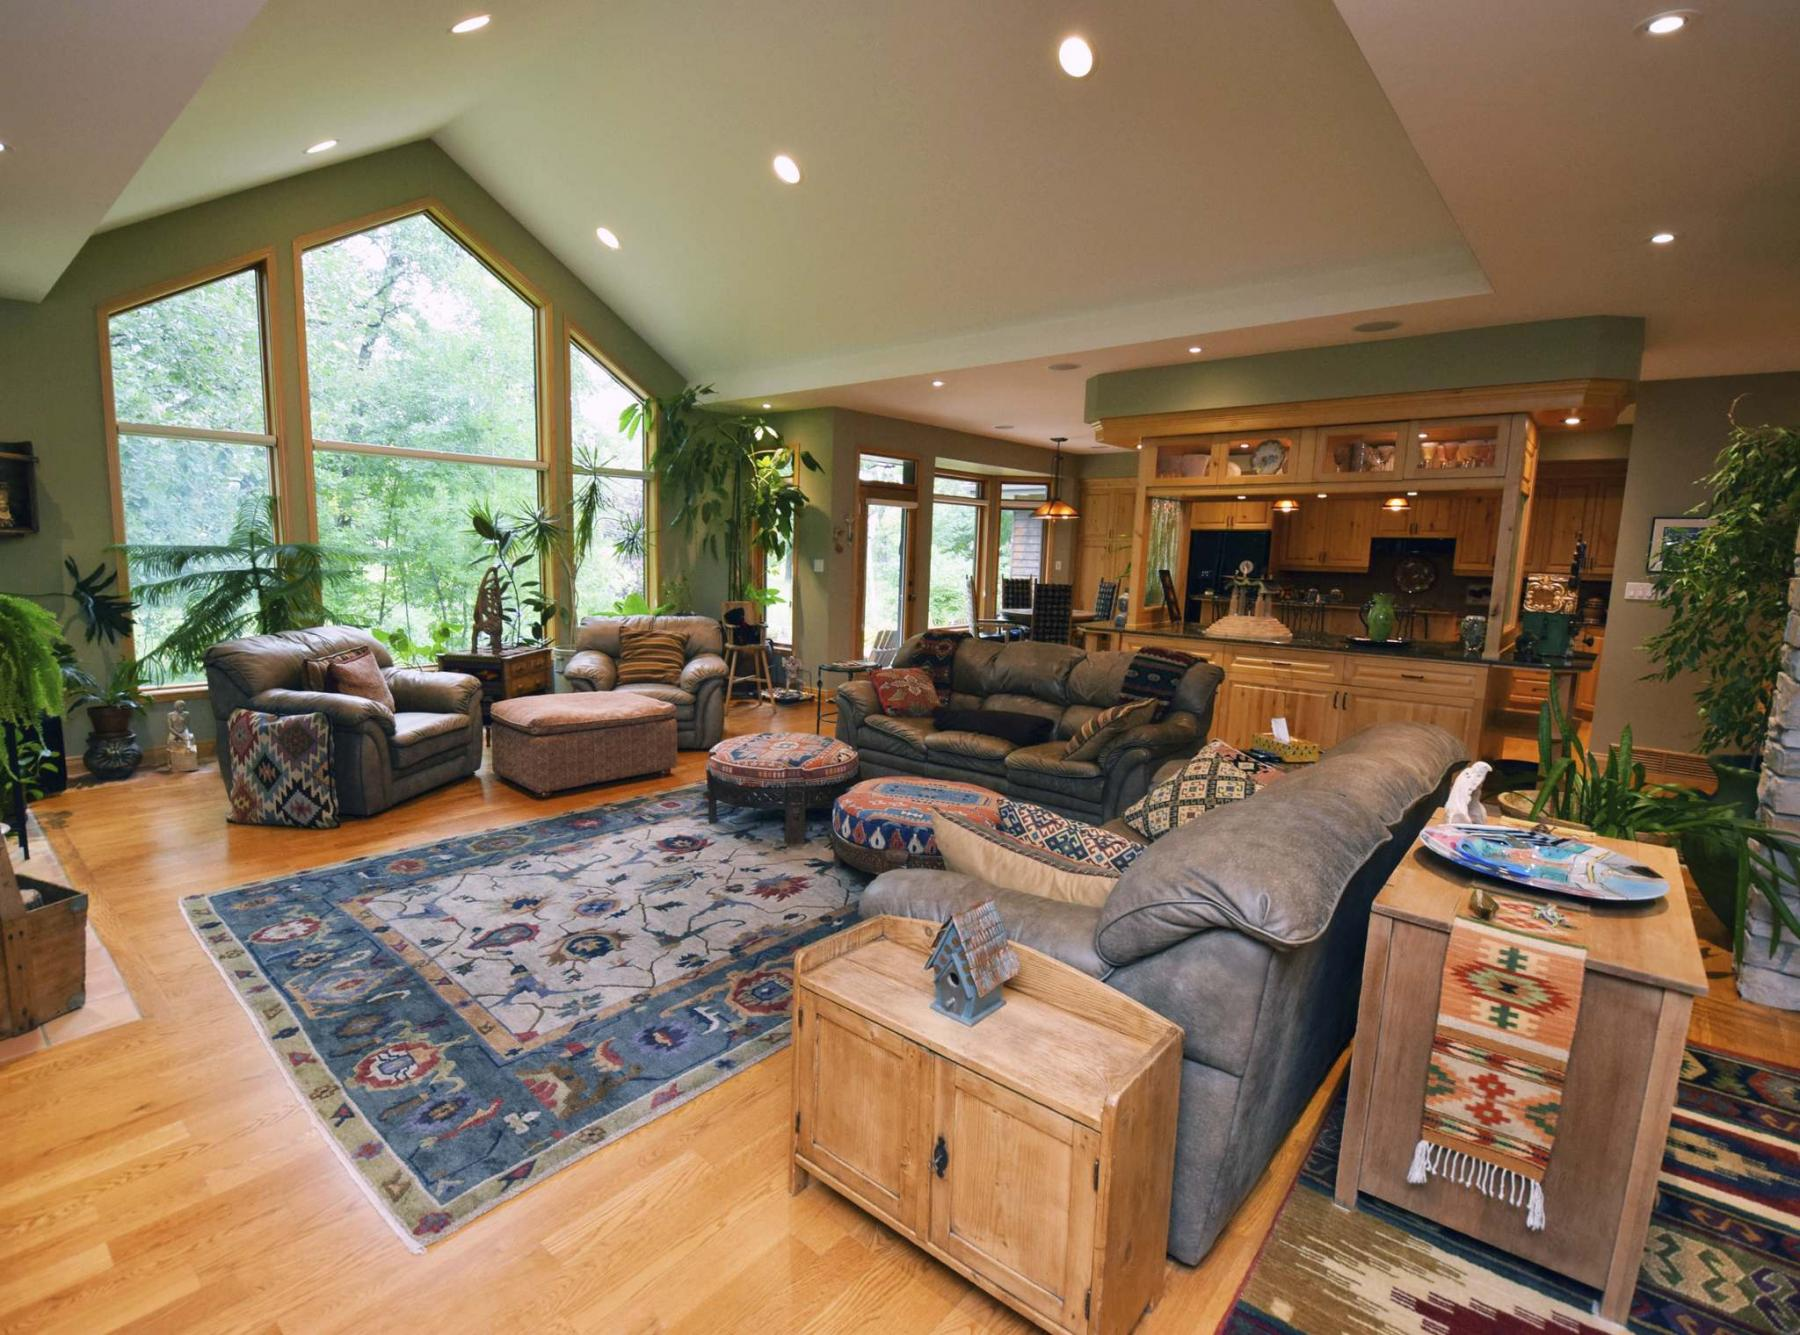 <p>Photos by Todd Lewys / Winnipeg Free Press</p><p>With a vaulted ceiling and massive windows, the living room has a stunning view of the property's park-like backyard.</p>